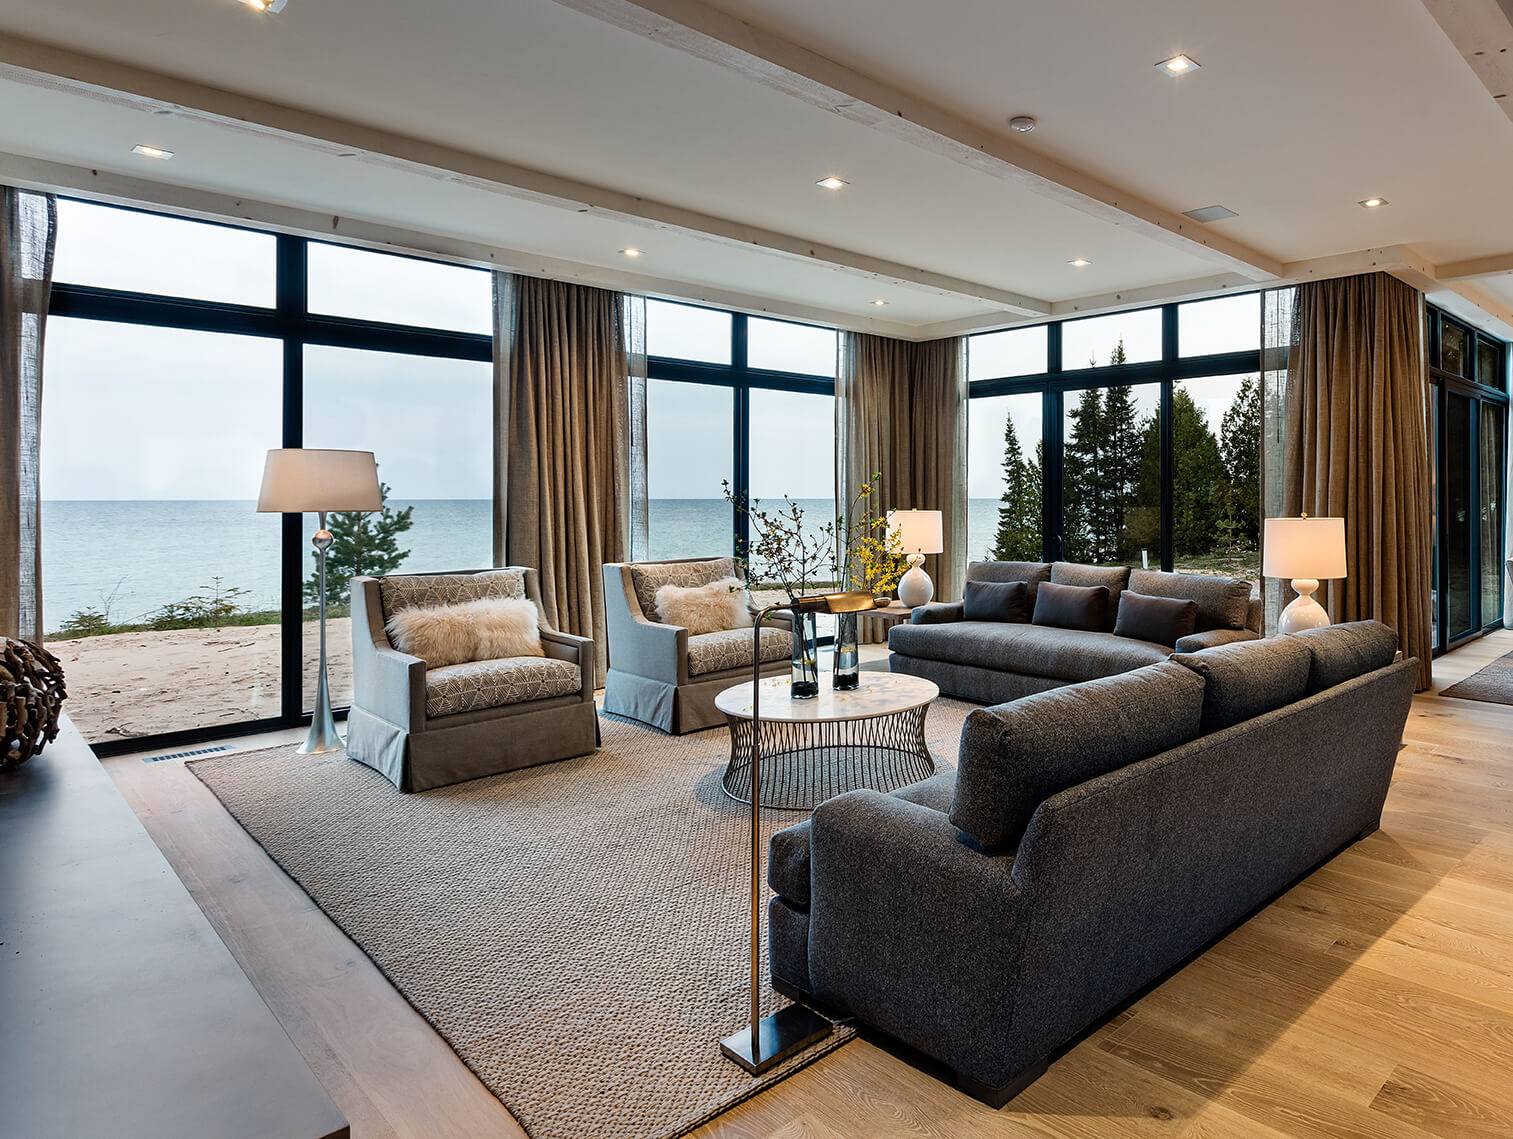 Living room view of Lake Michigan